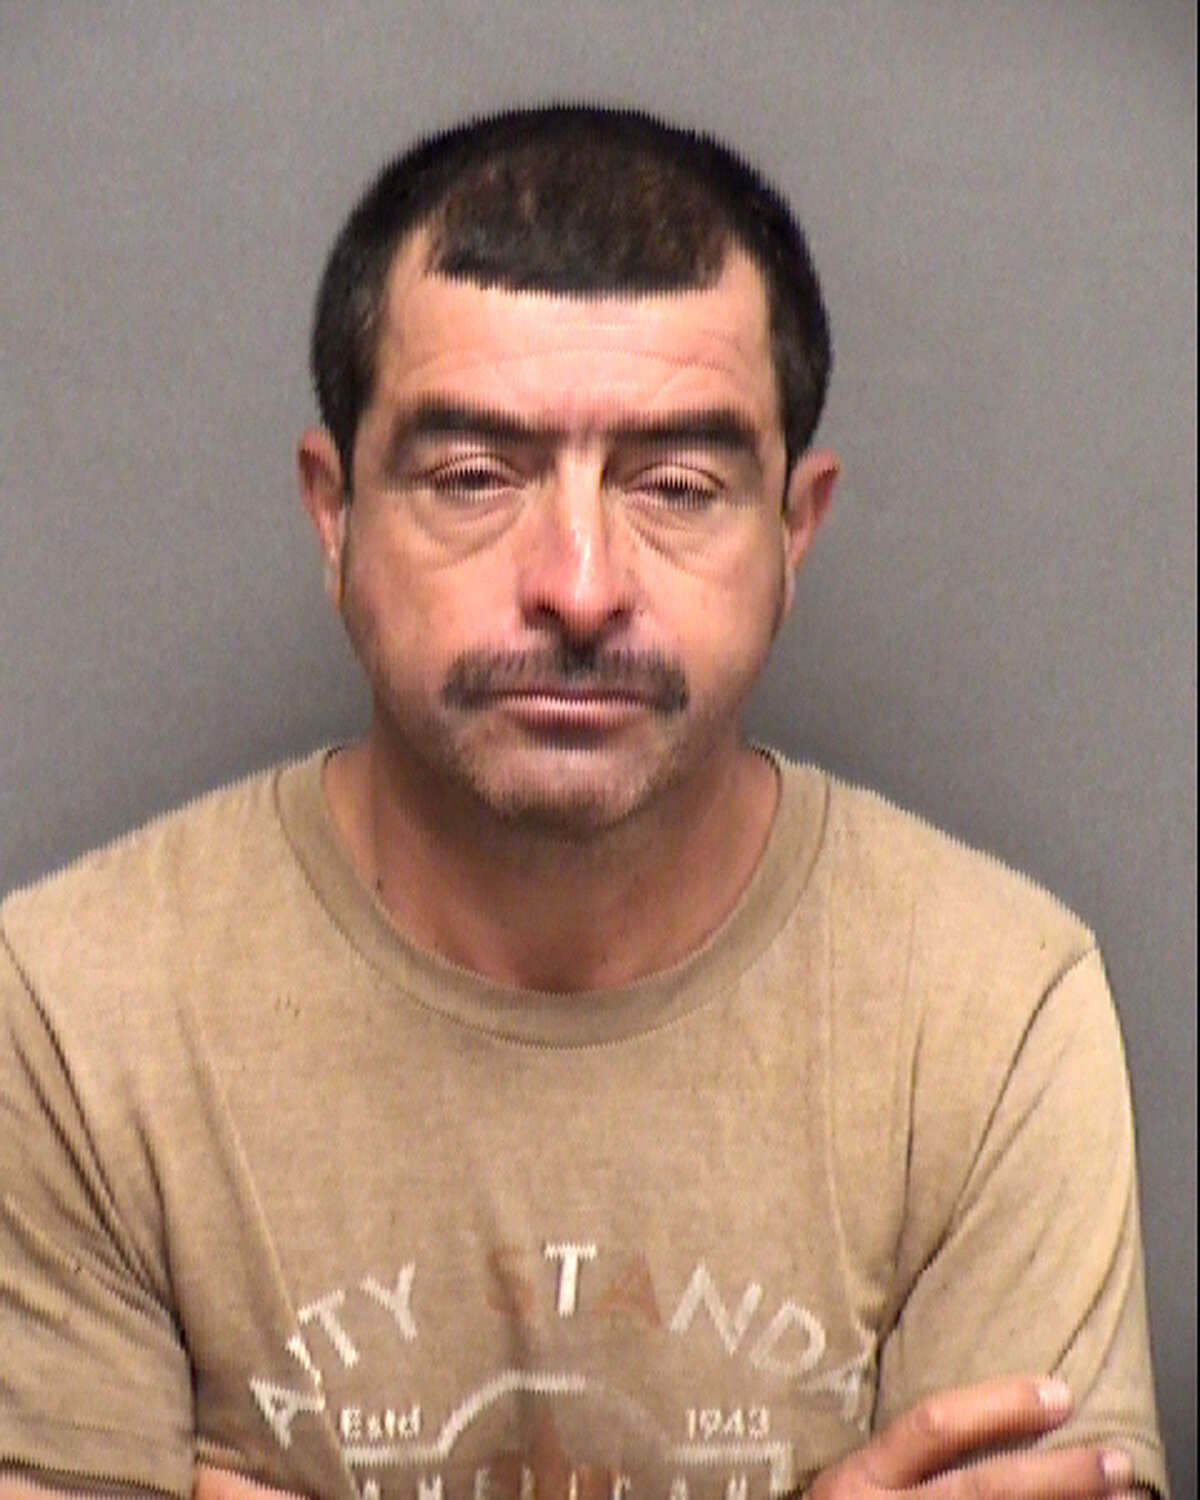 Sergio Candia Avila was charged with driving while intoxicated, third or more, on May 19, 2019.